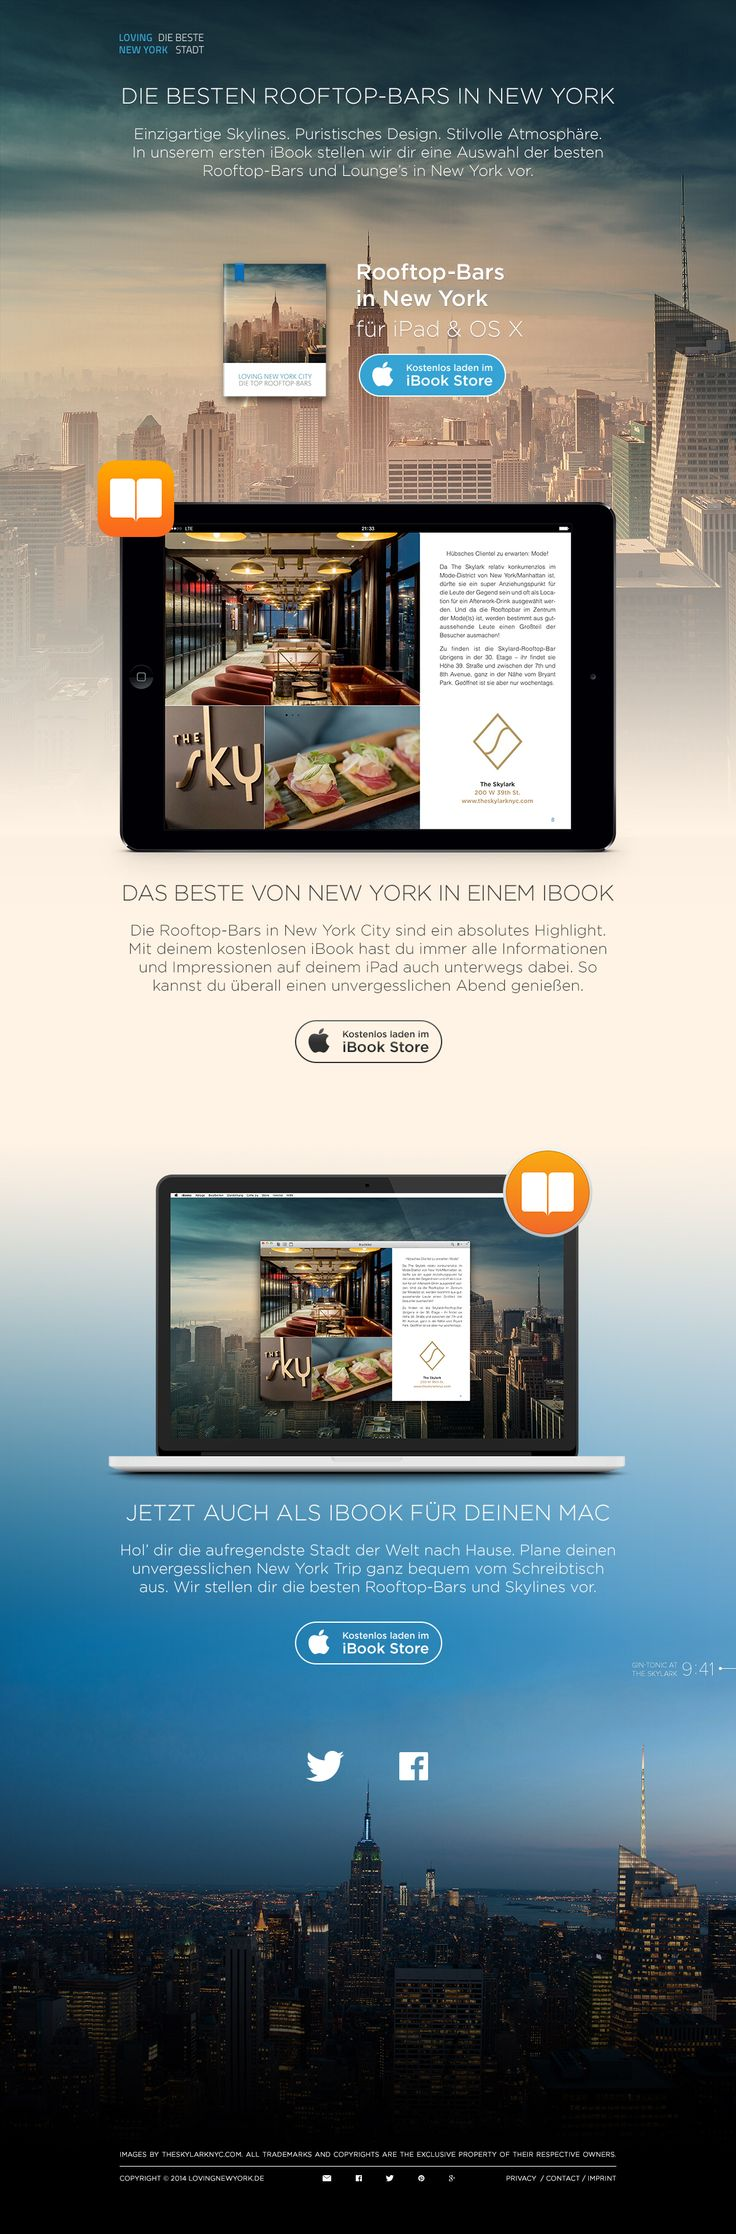 Promotional One Pager - by Steffen Karspeck for melting elements | #ui #webdesign #ibook